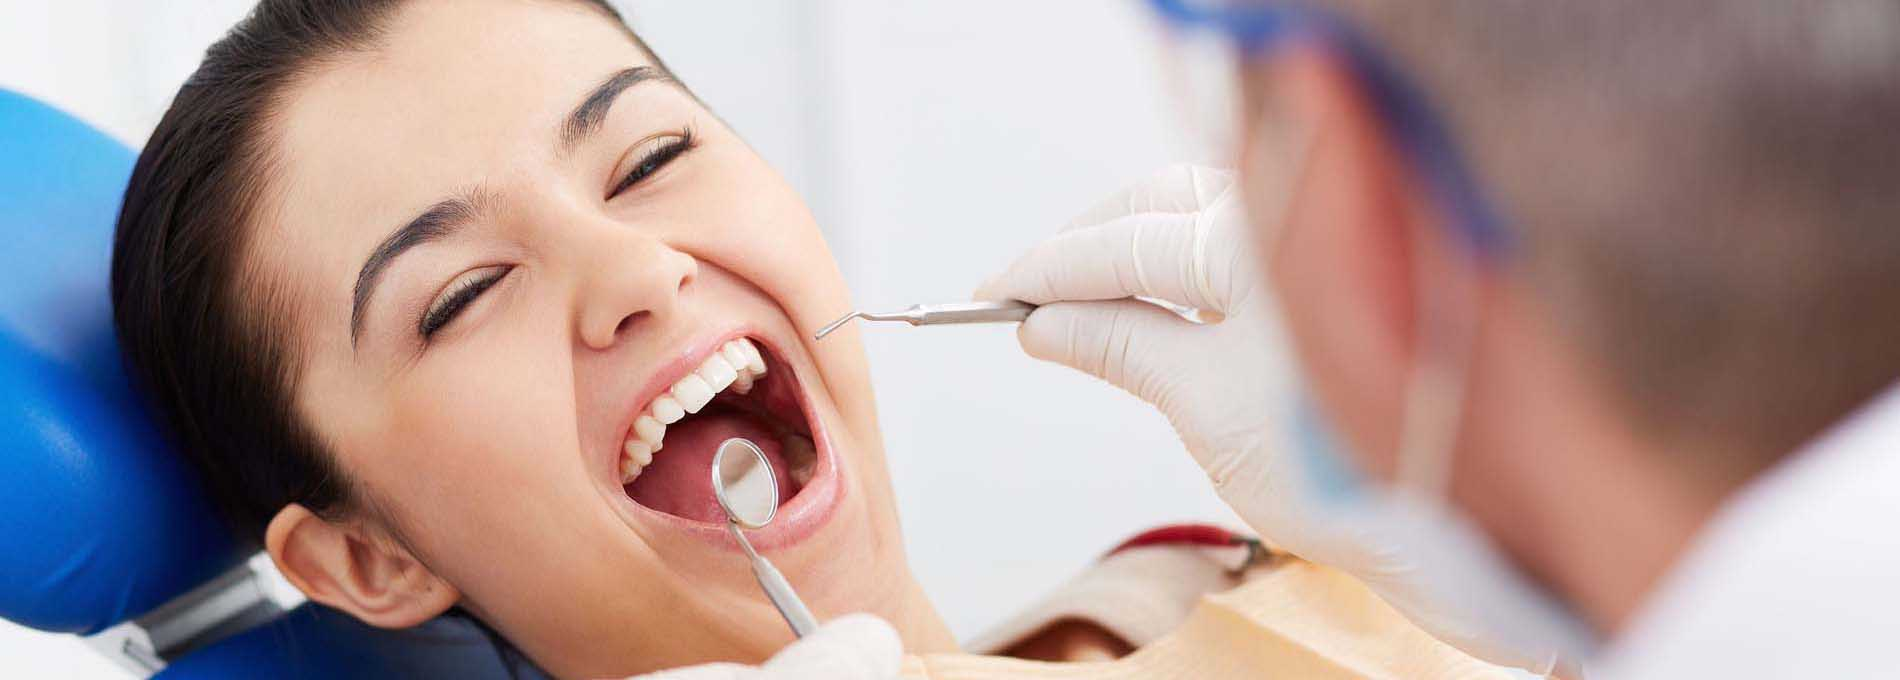 ab-dental-clinic-dentist-commercial-vancouver-3.jpg